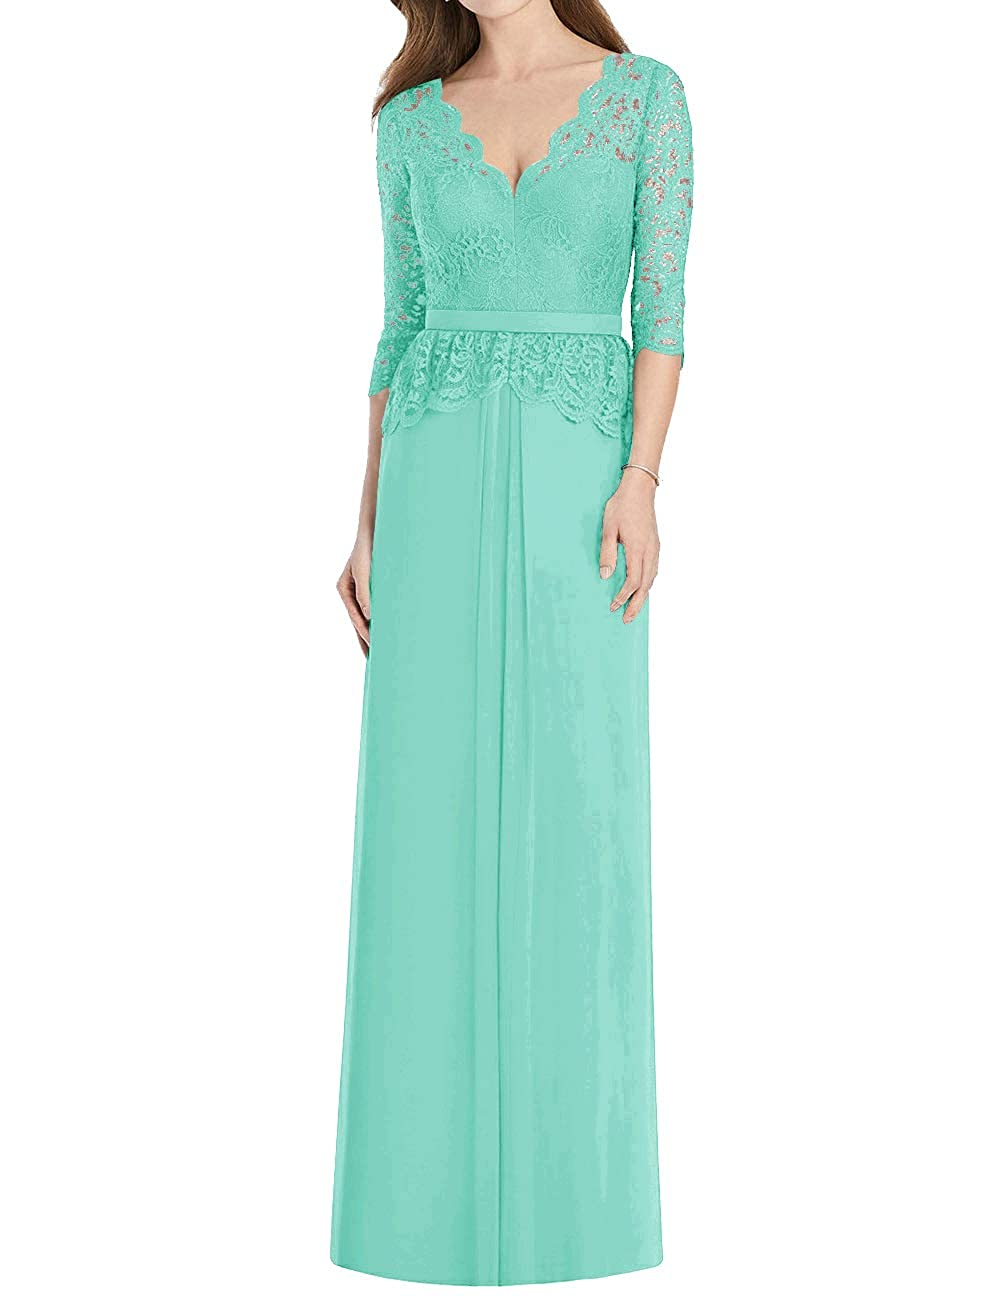 Mother of The Bride Dress Long Chiffon Lace Formal Evening Wedding Prom Dresses